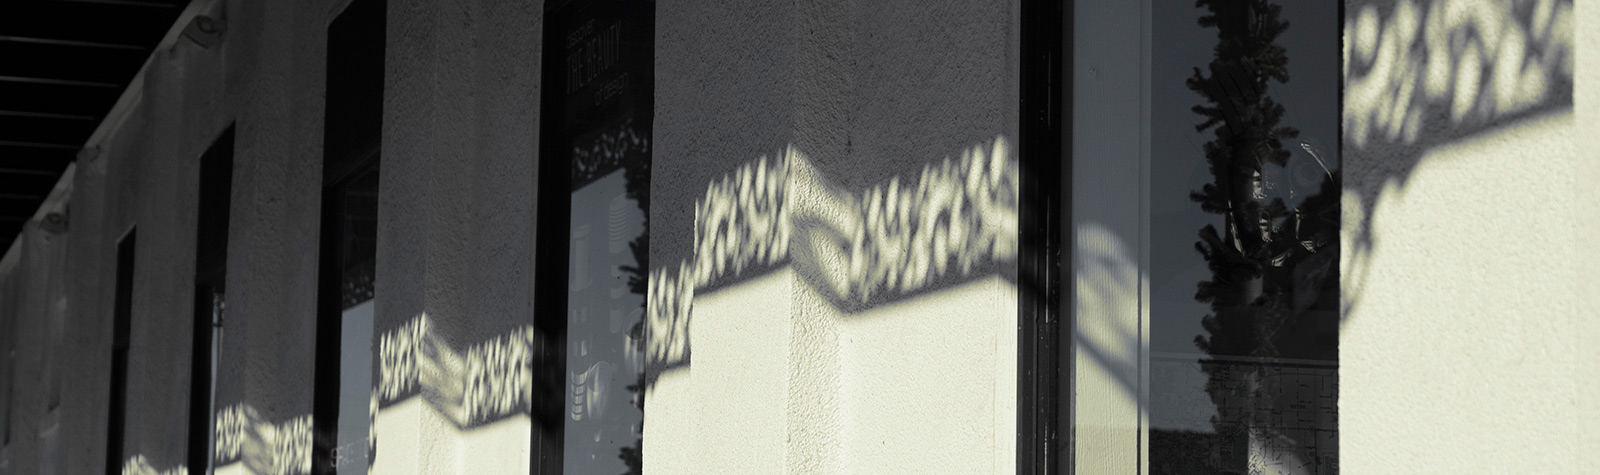 building with an interesting shadow from ornamental ironwork